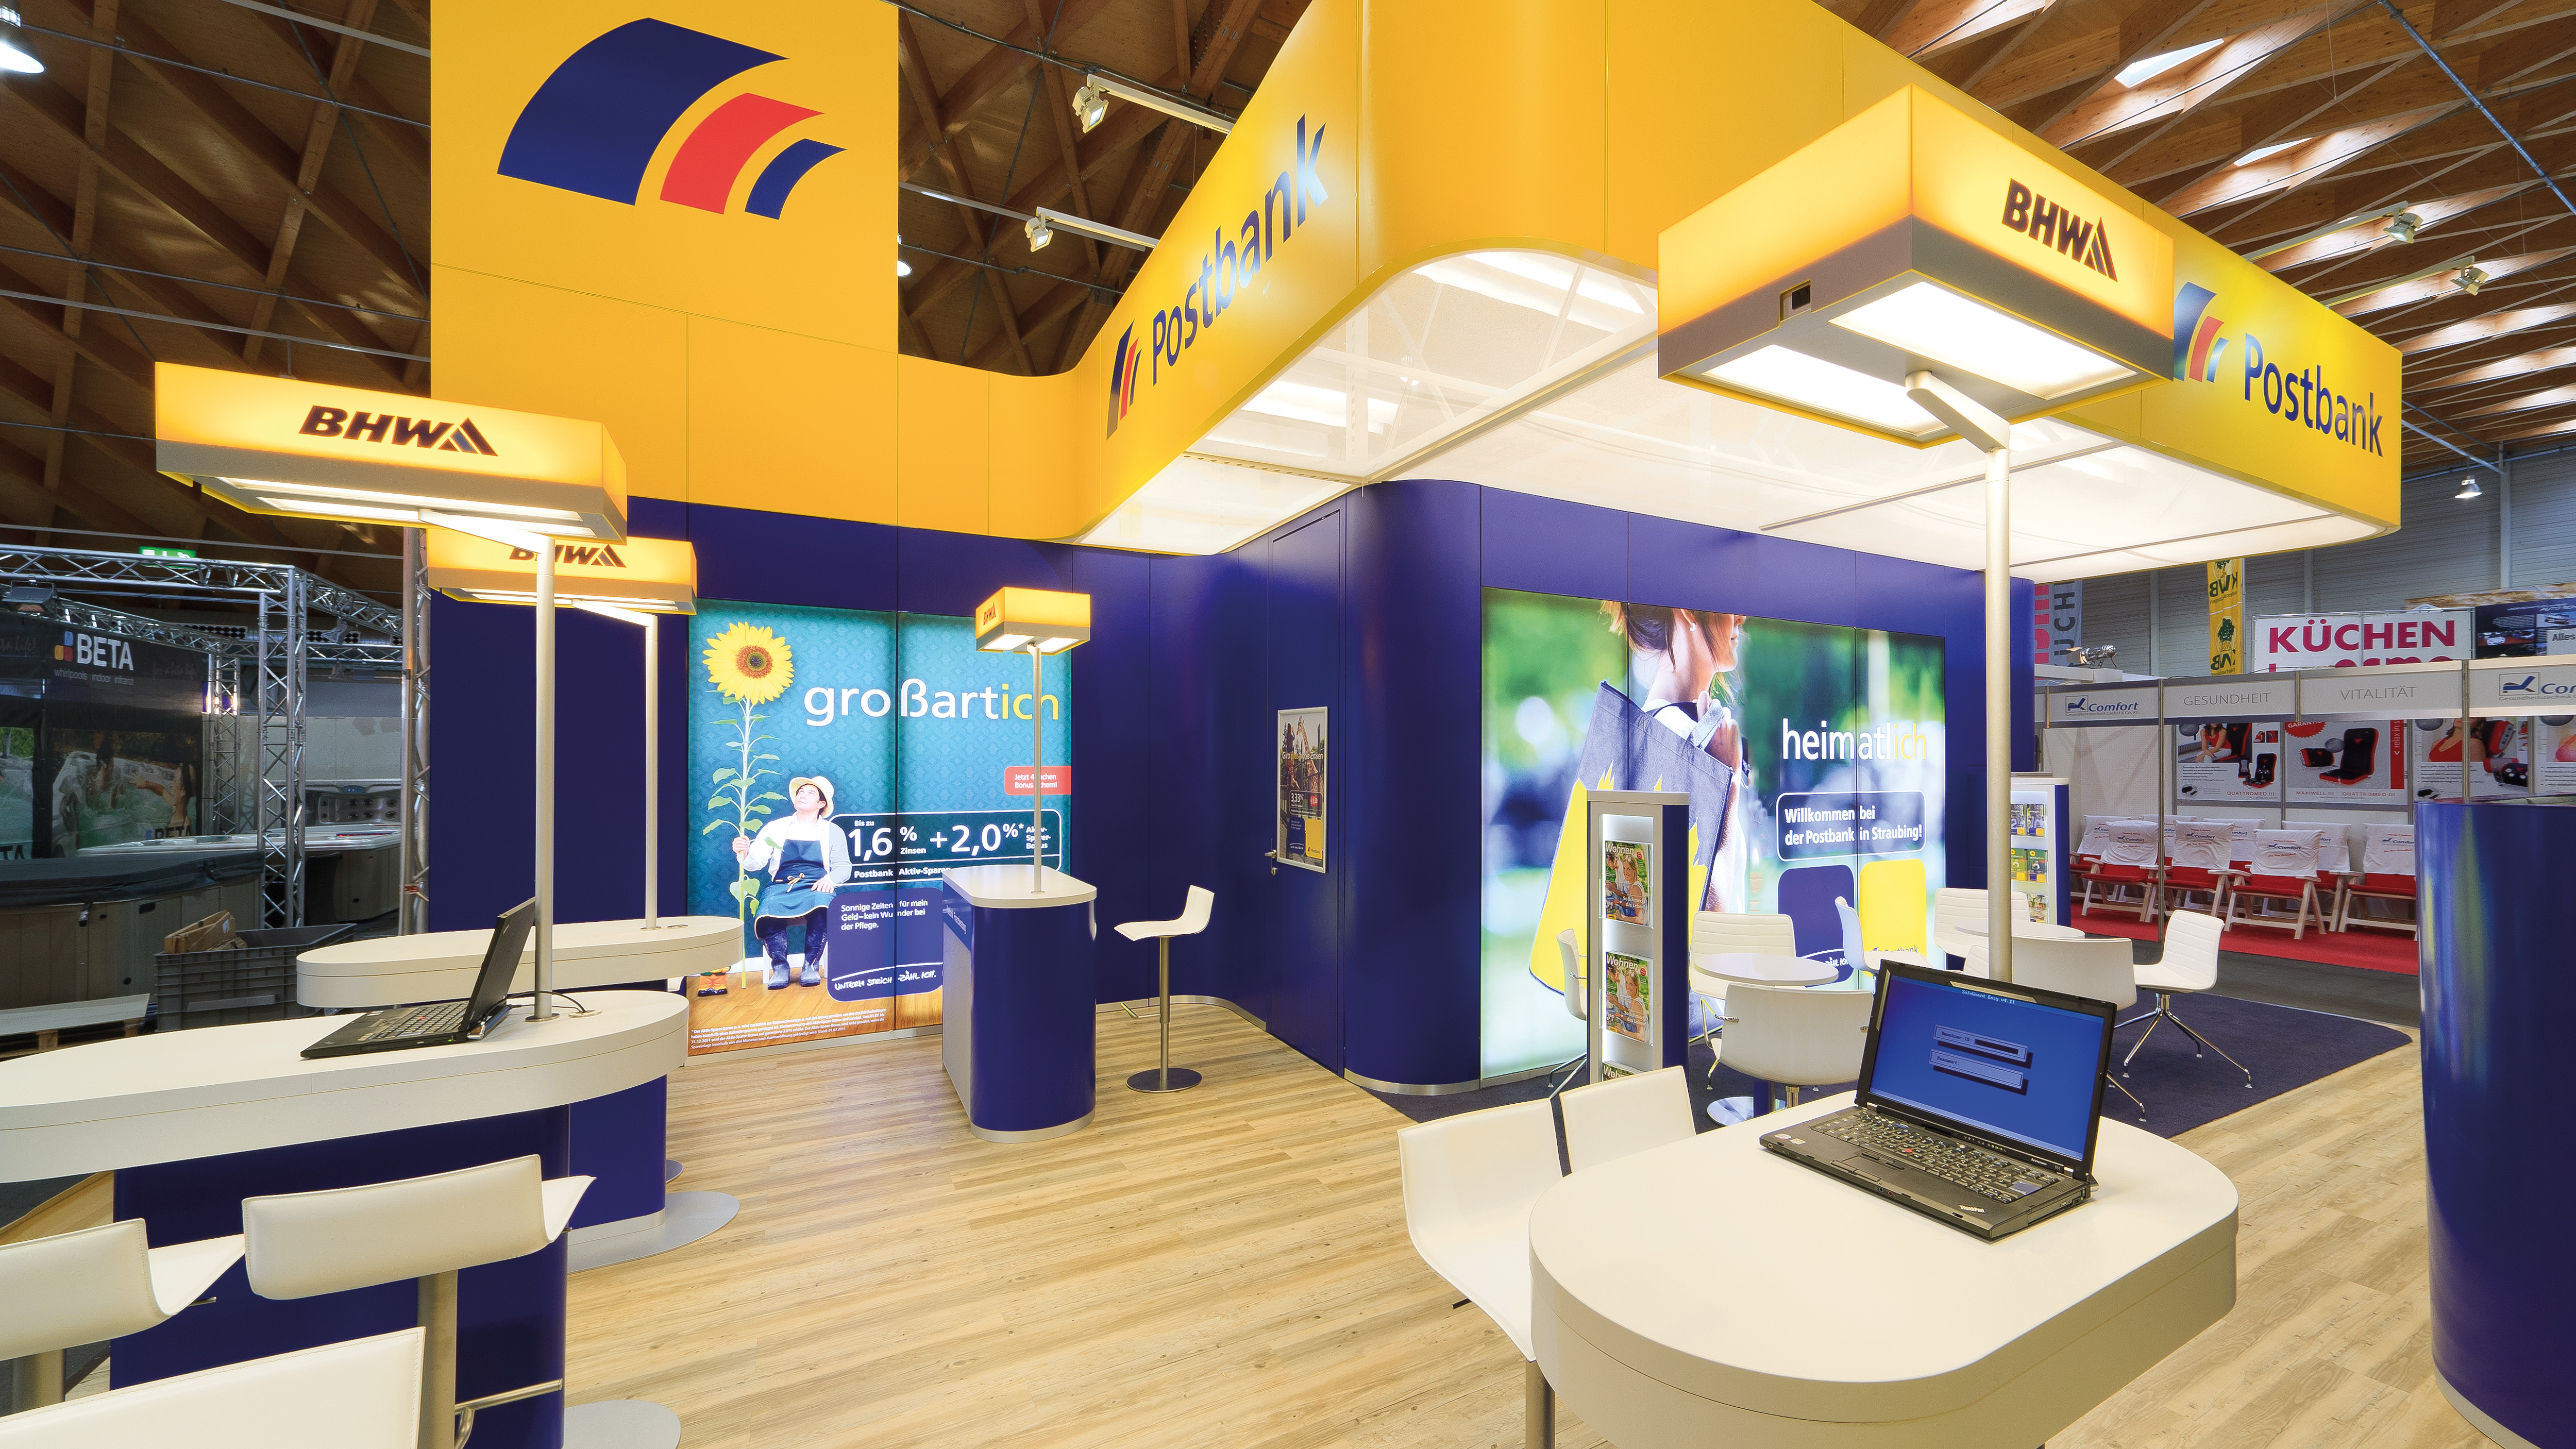 Exhibition stand resembles a Postbank branch